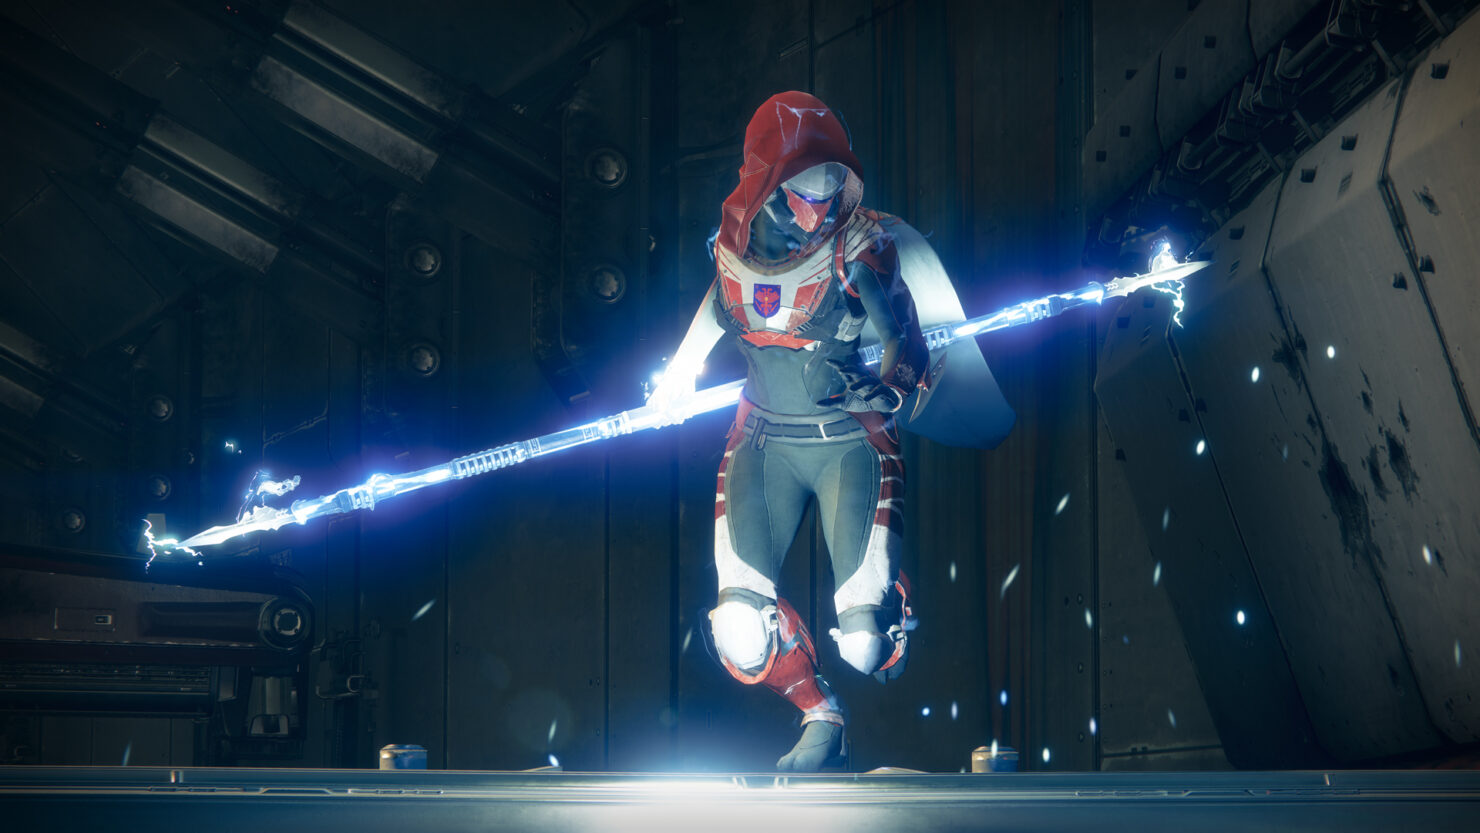 d2_sony_crucible_action_03_1497282081